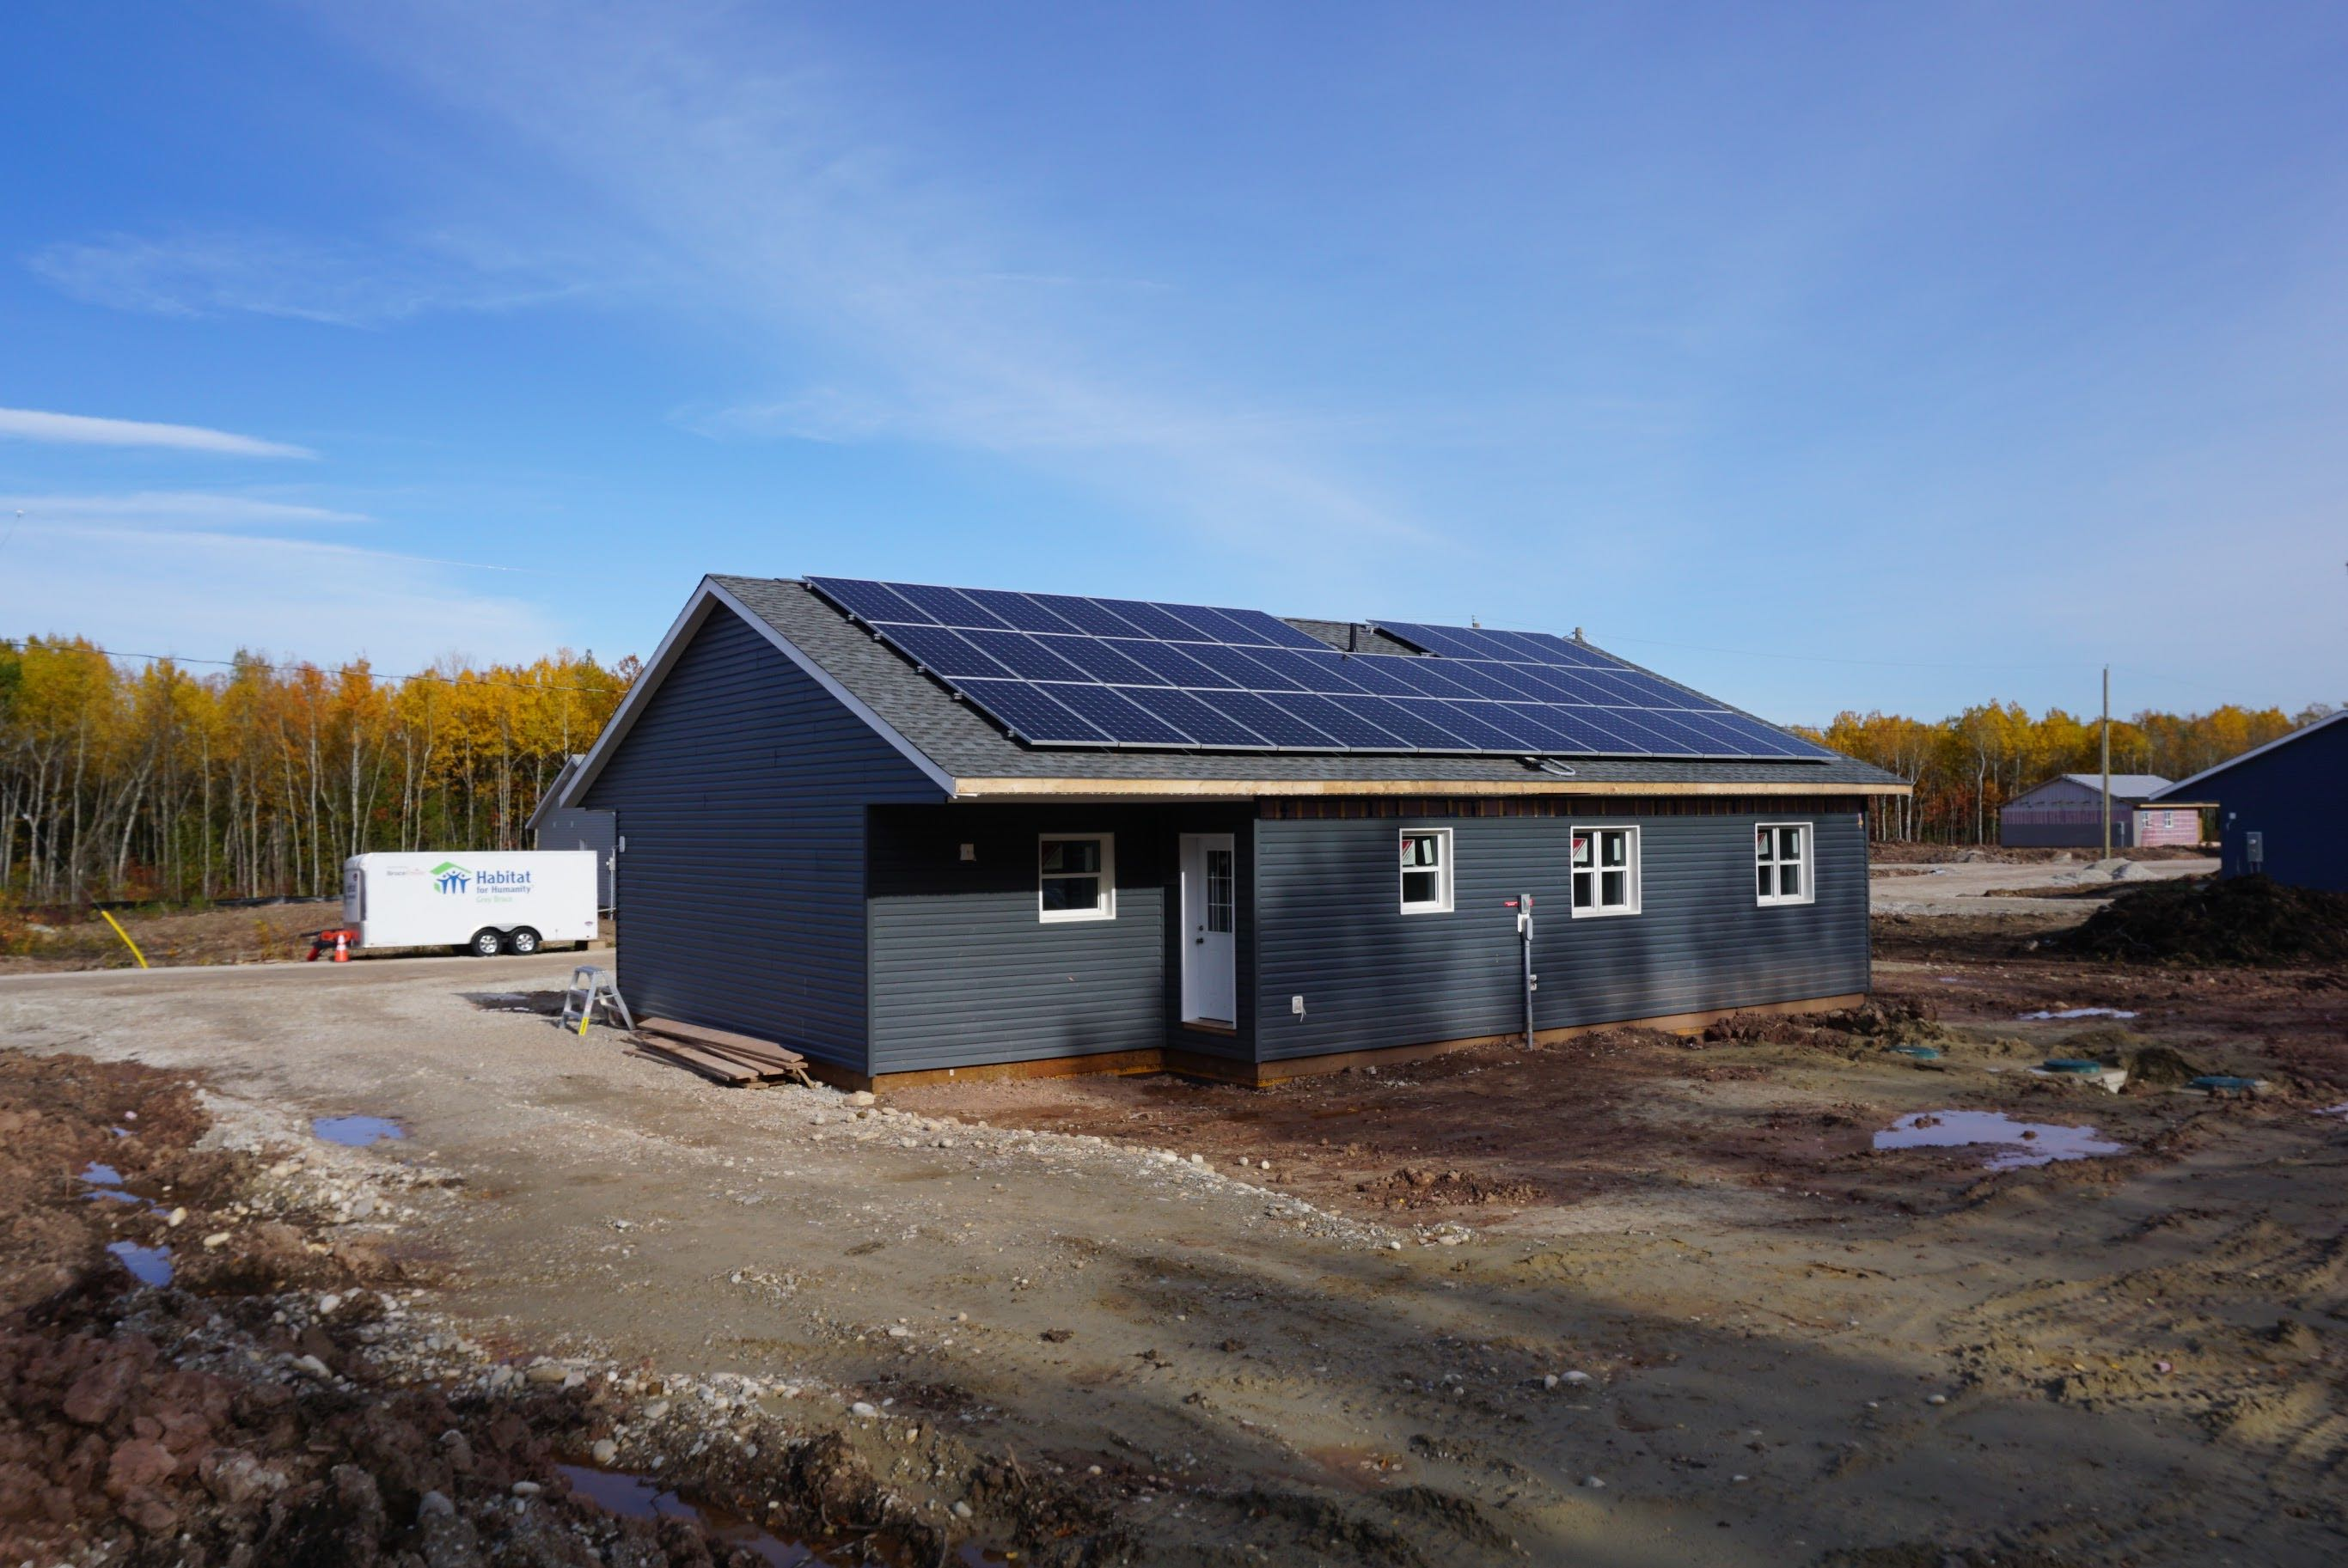 Photo of a newly constructed home with solar panels on the roof.